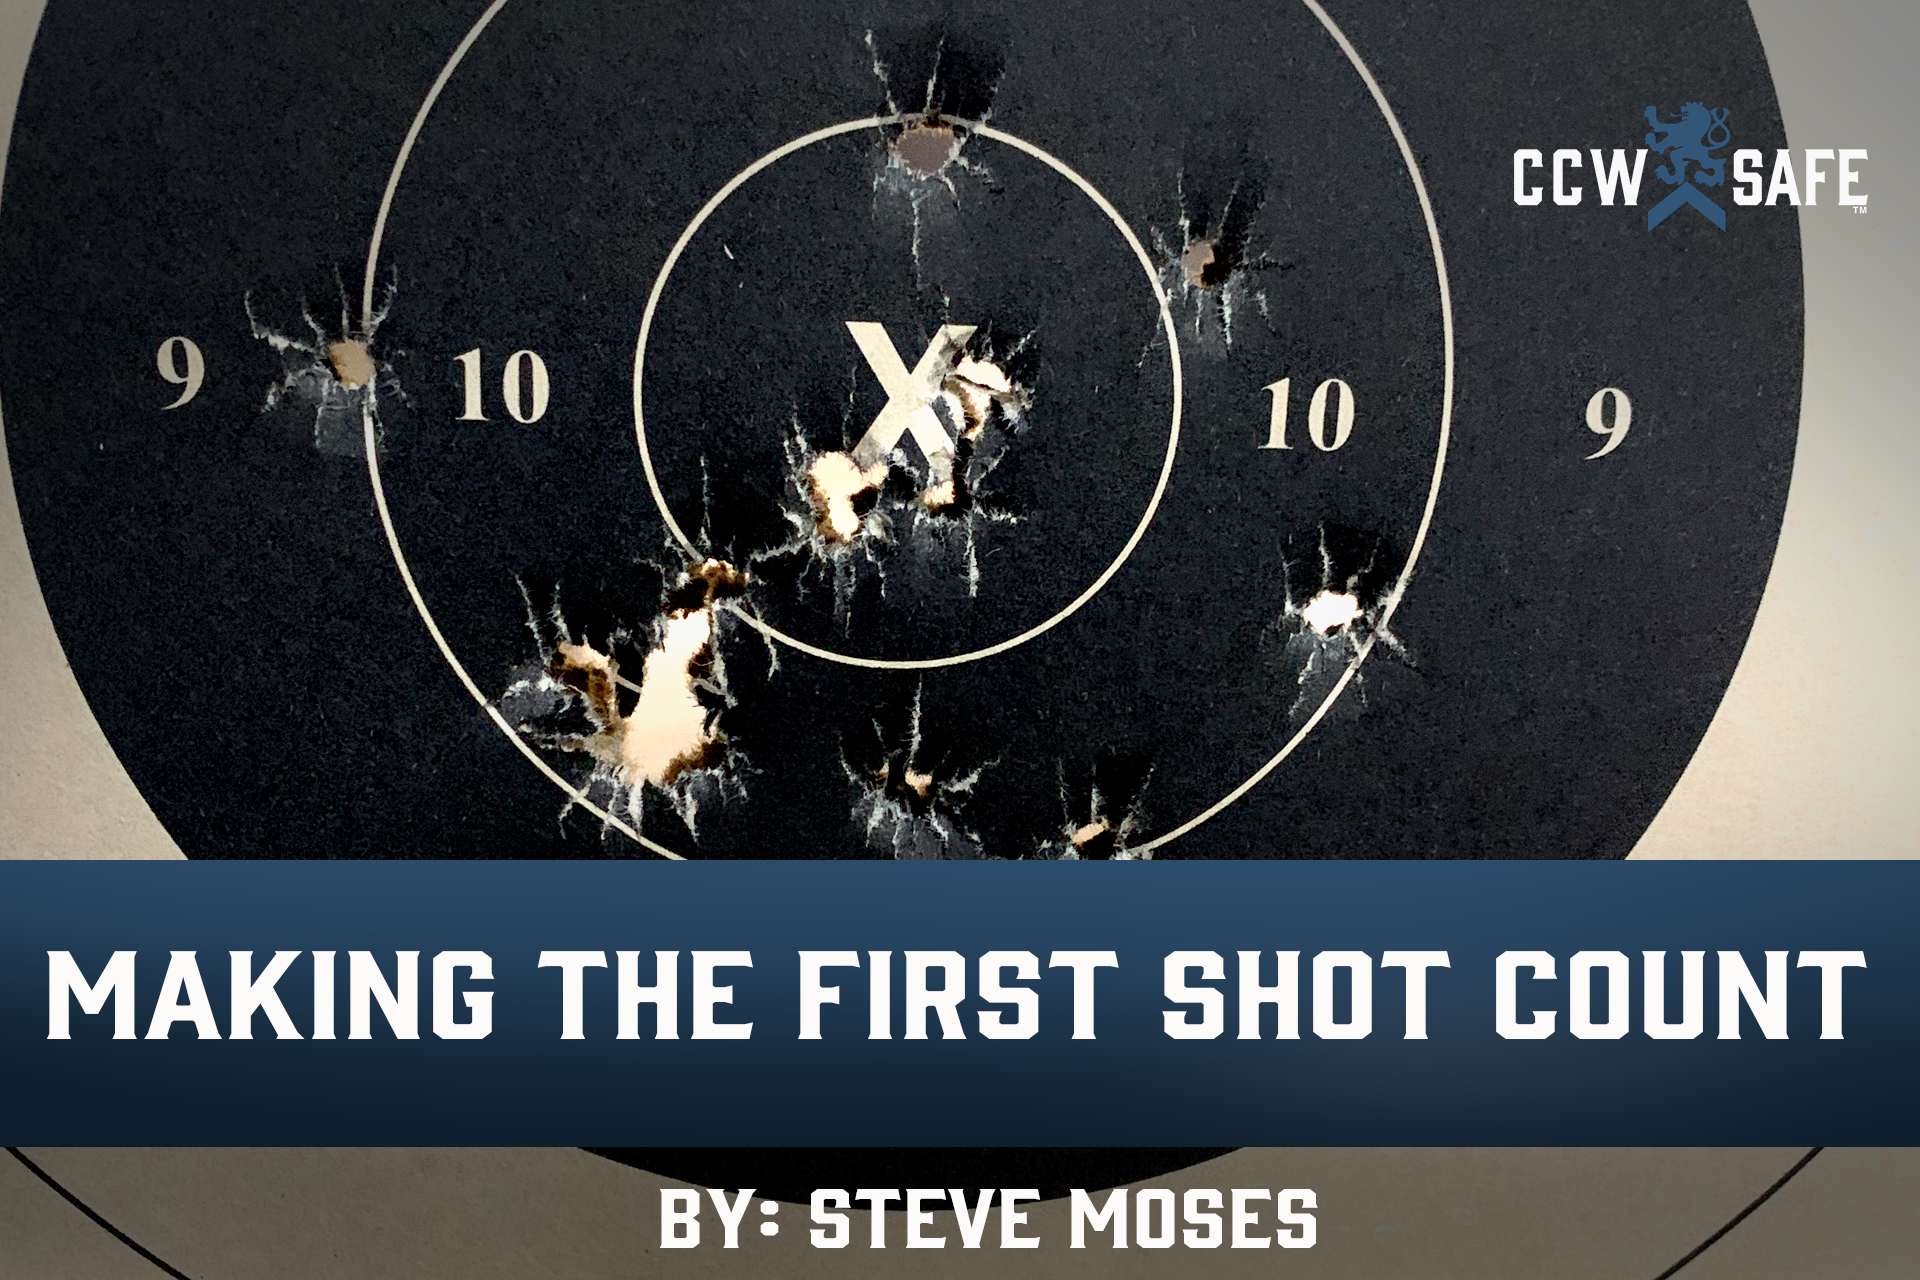 MAKING THE FIRST SHOT COUNT